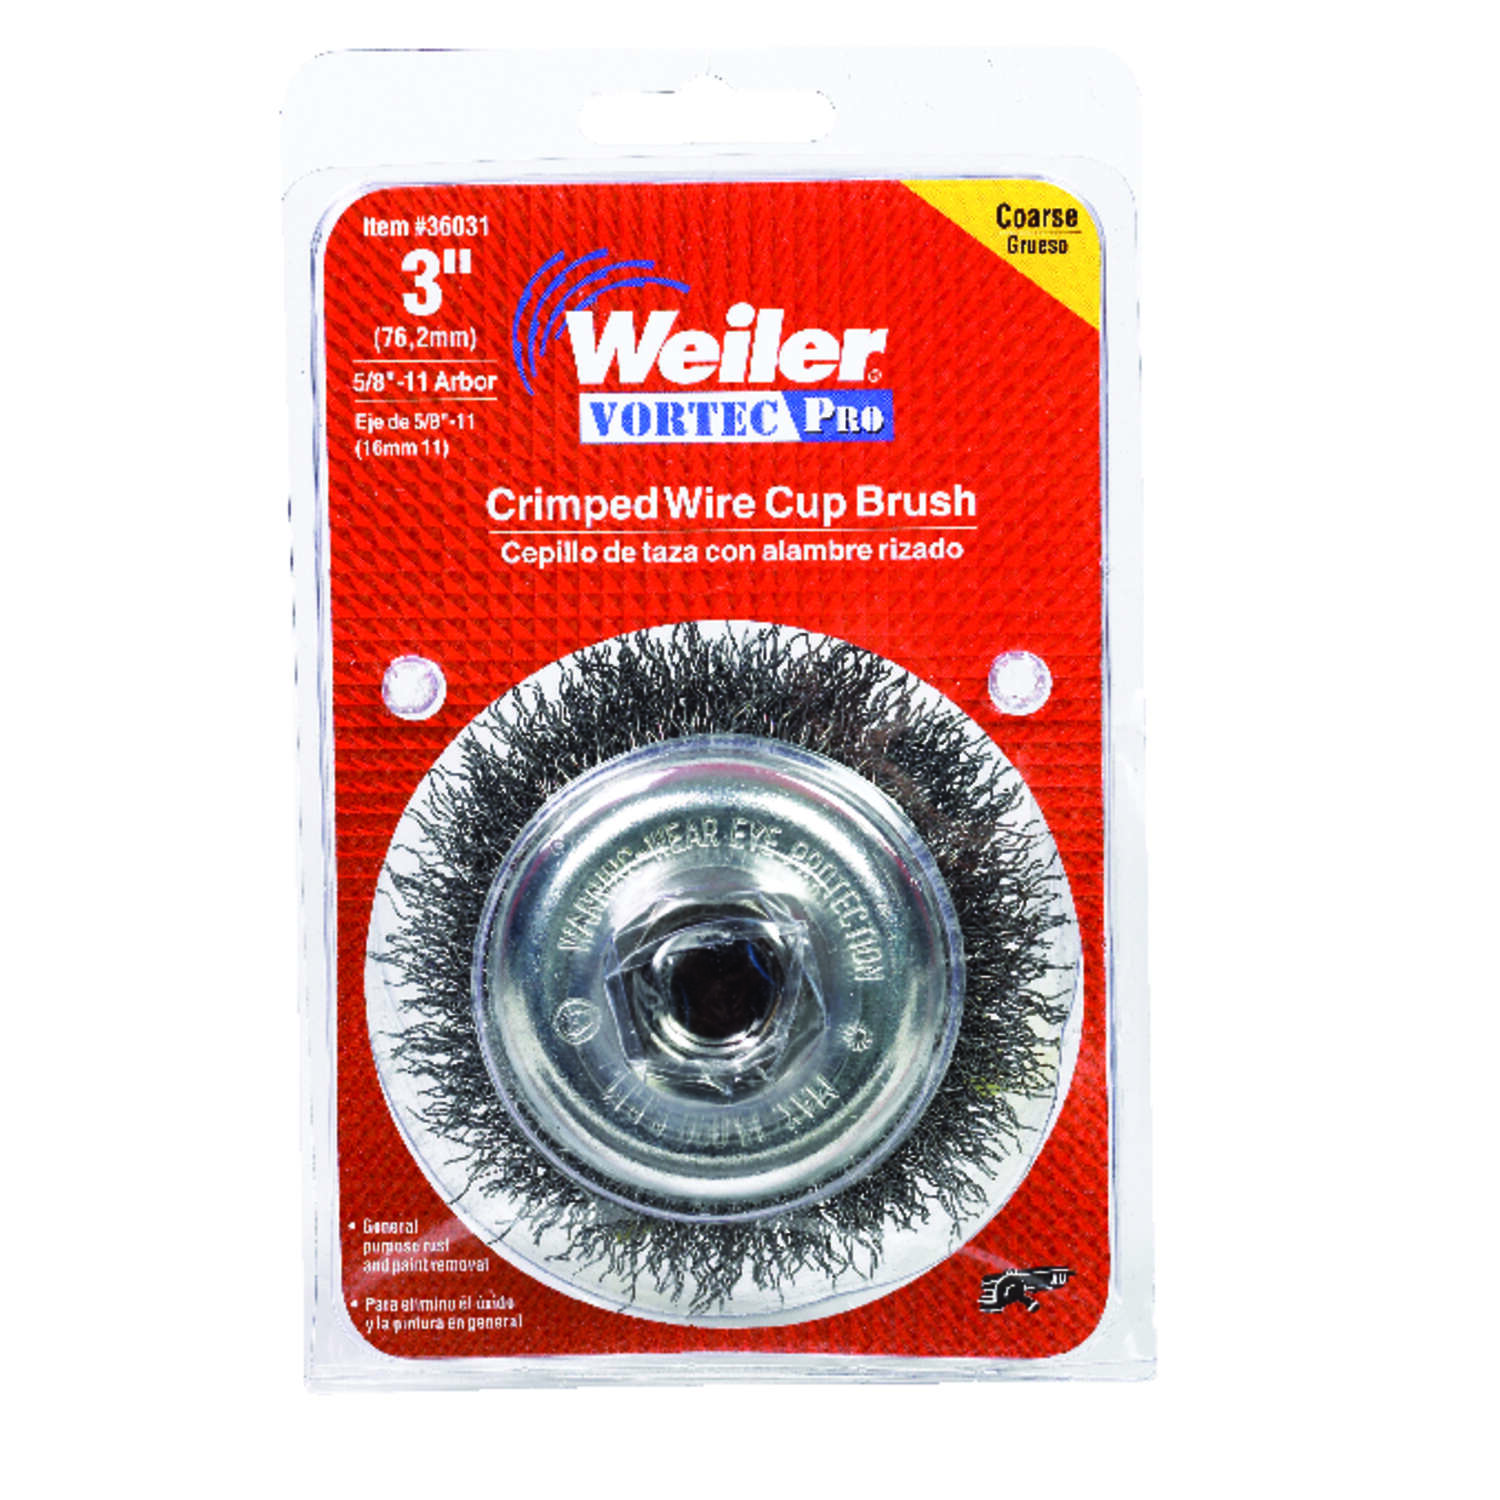 Weiler Vortec Pro 3 in. Dia. x 5/8-11 Crimped Steel Crimped Wire Cup Brush 14000 rpm 1 pc.